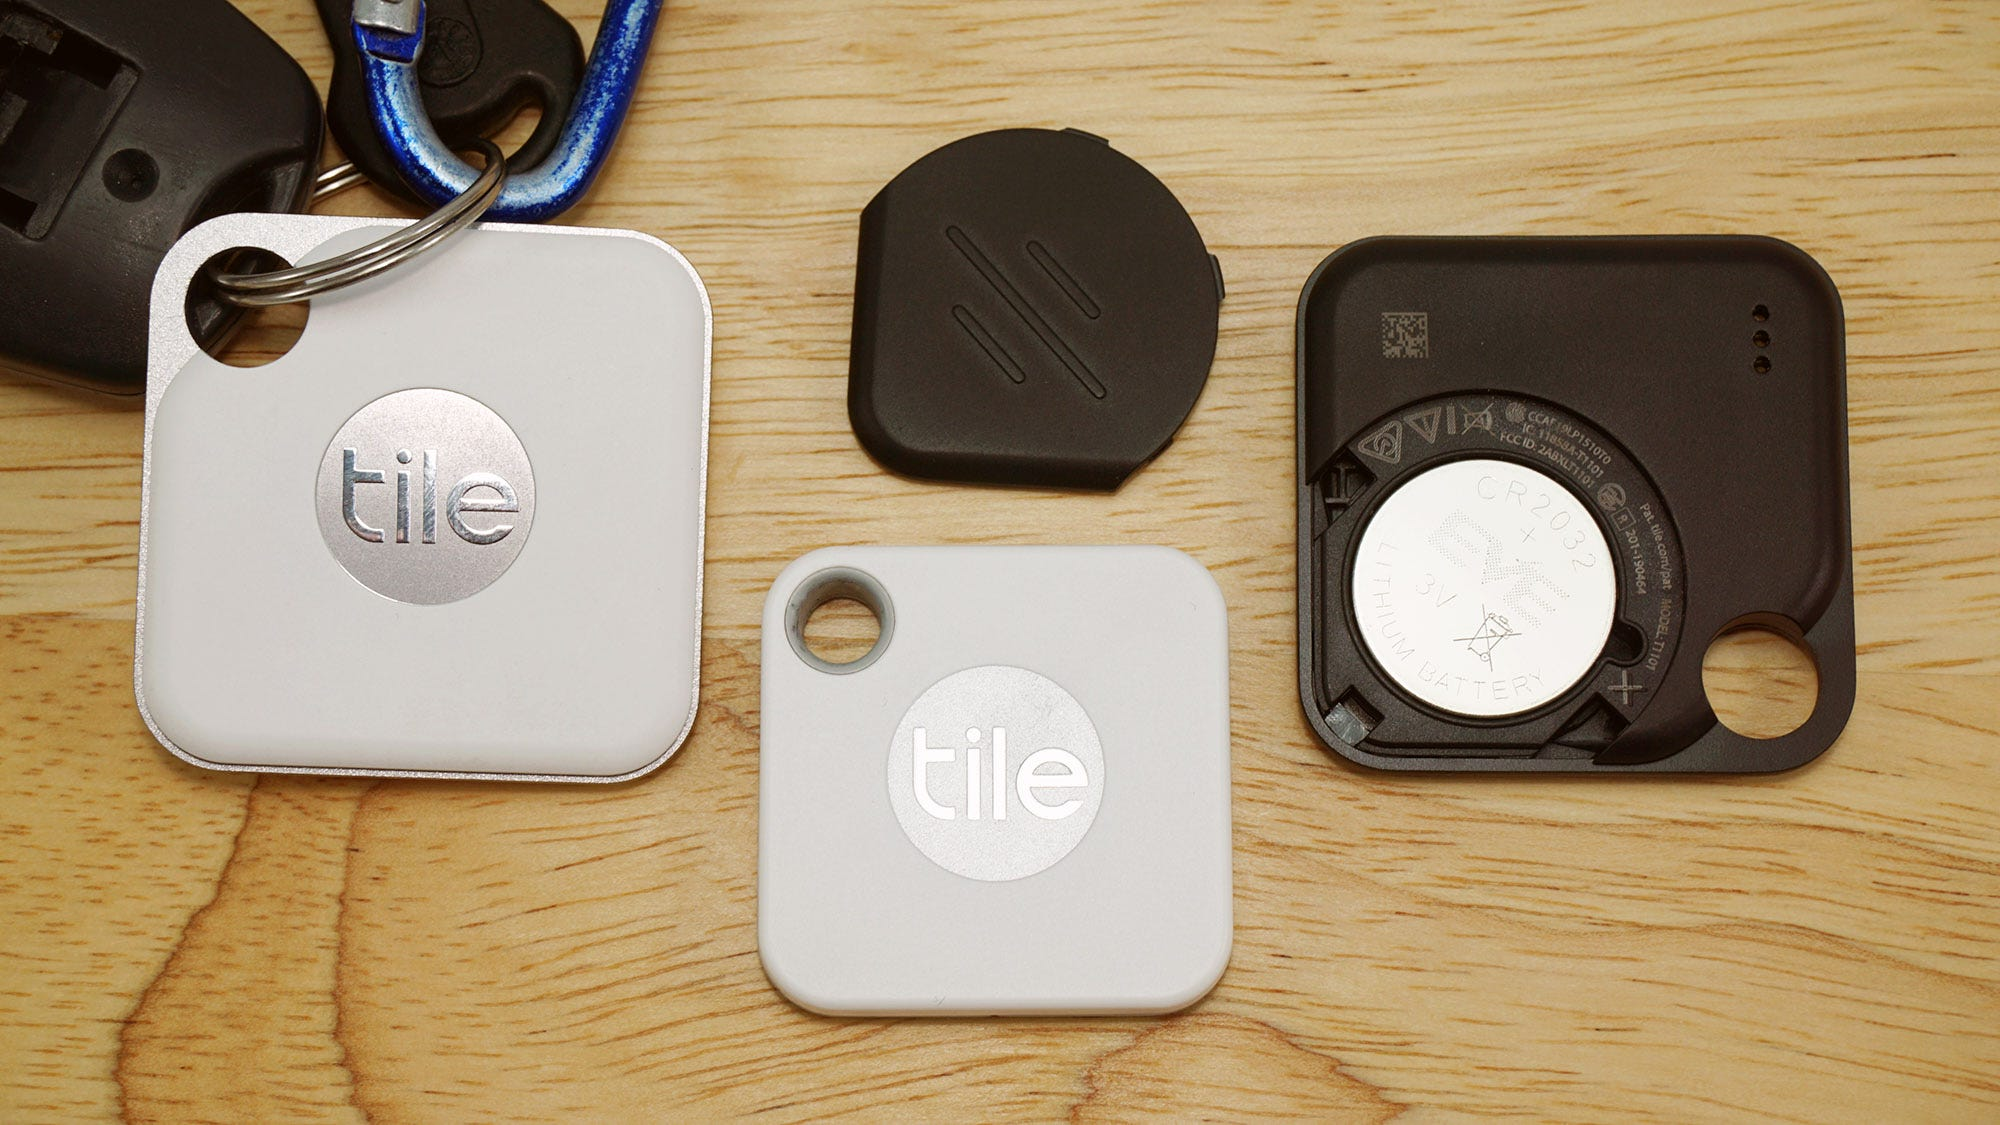 Two Tile Pros compared to the Mate, one with battery exposed.